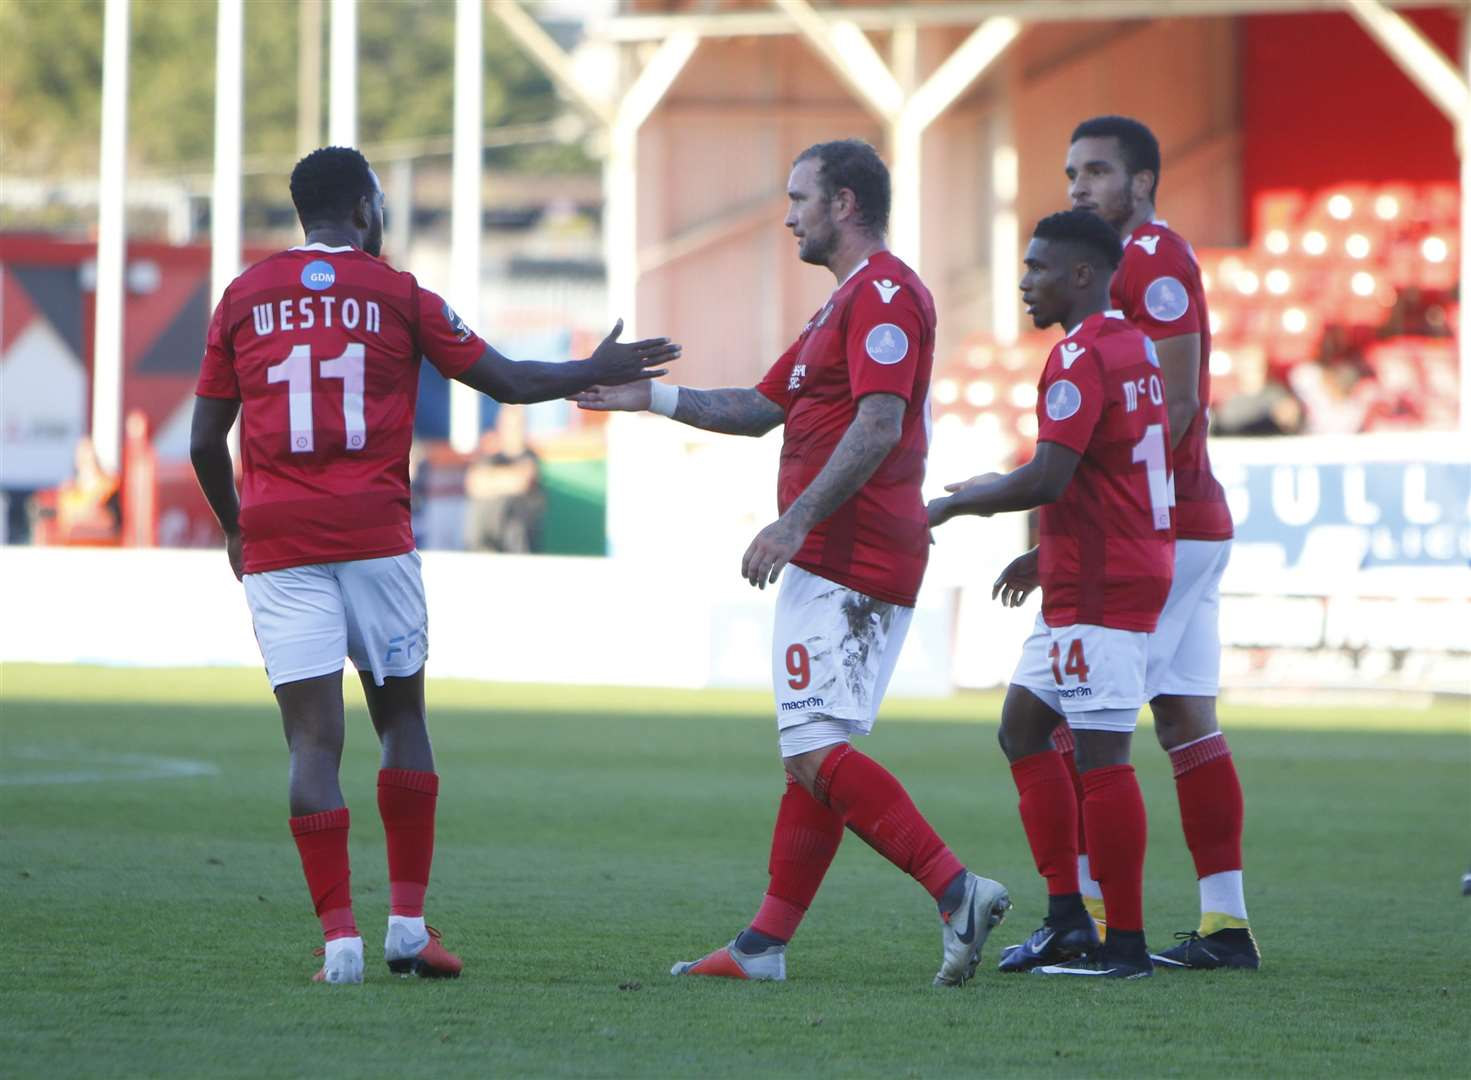 Ebbsfleet celebrate scoring against Worthing in the FA Cup Picture: Andy Jones